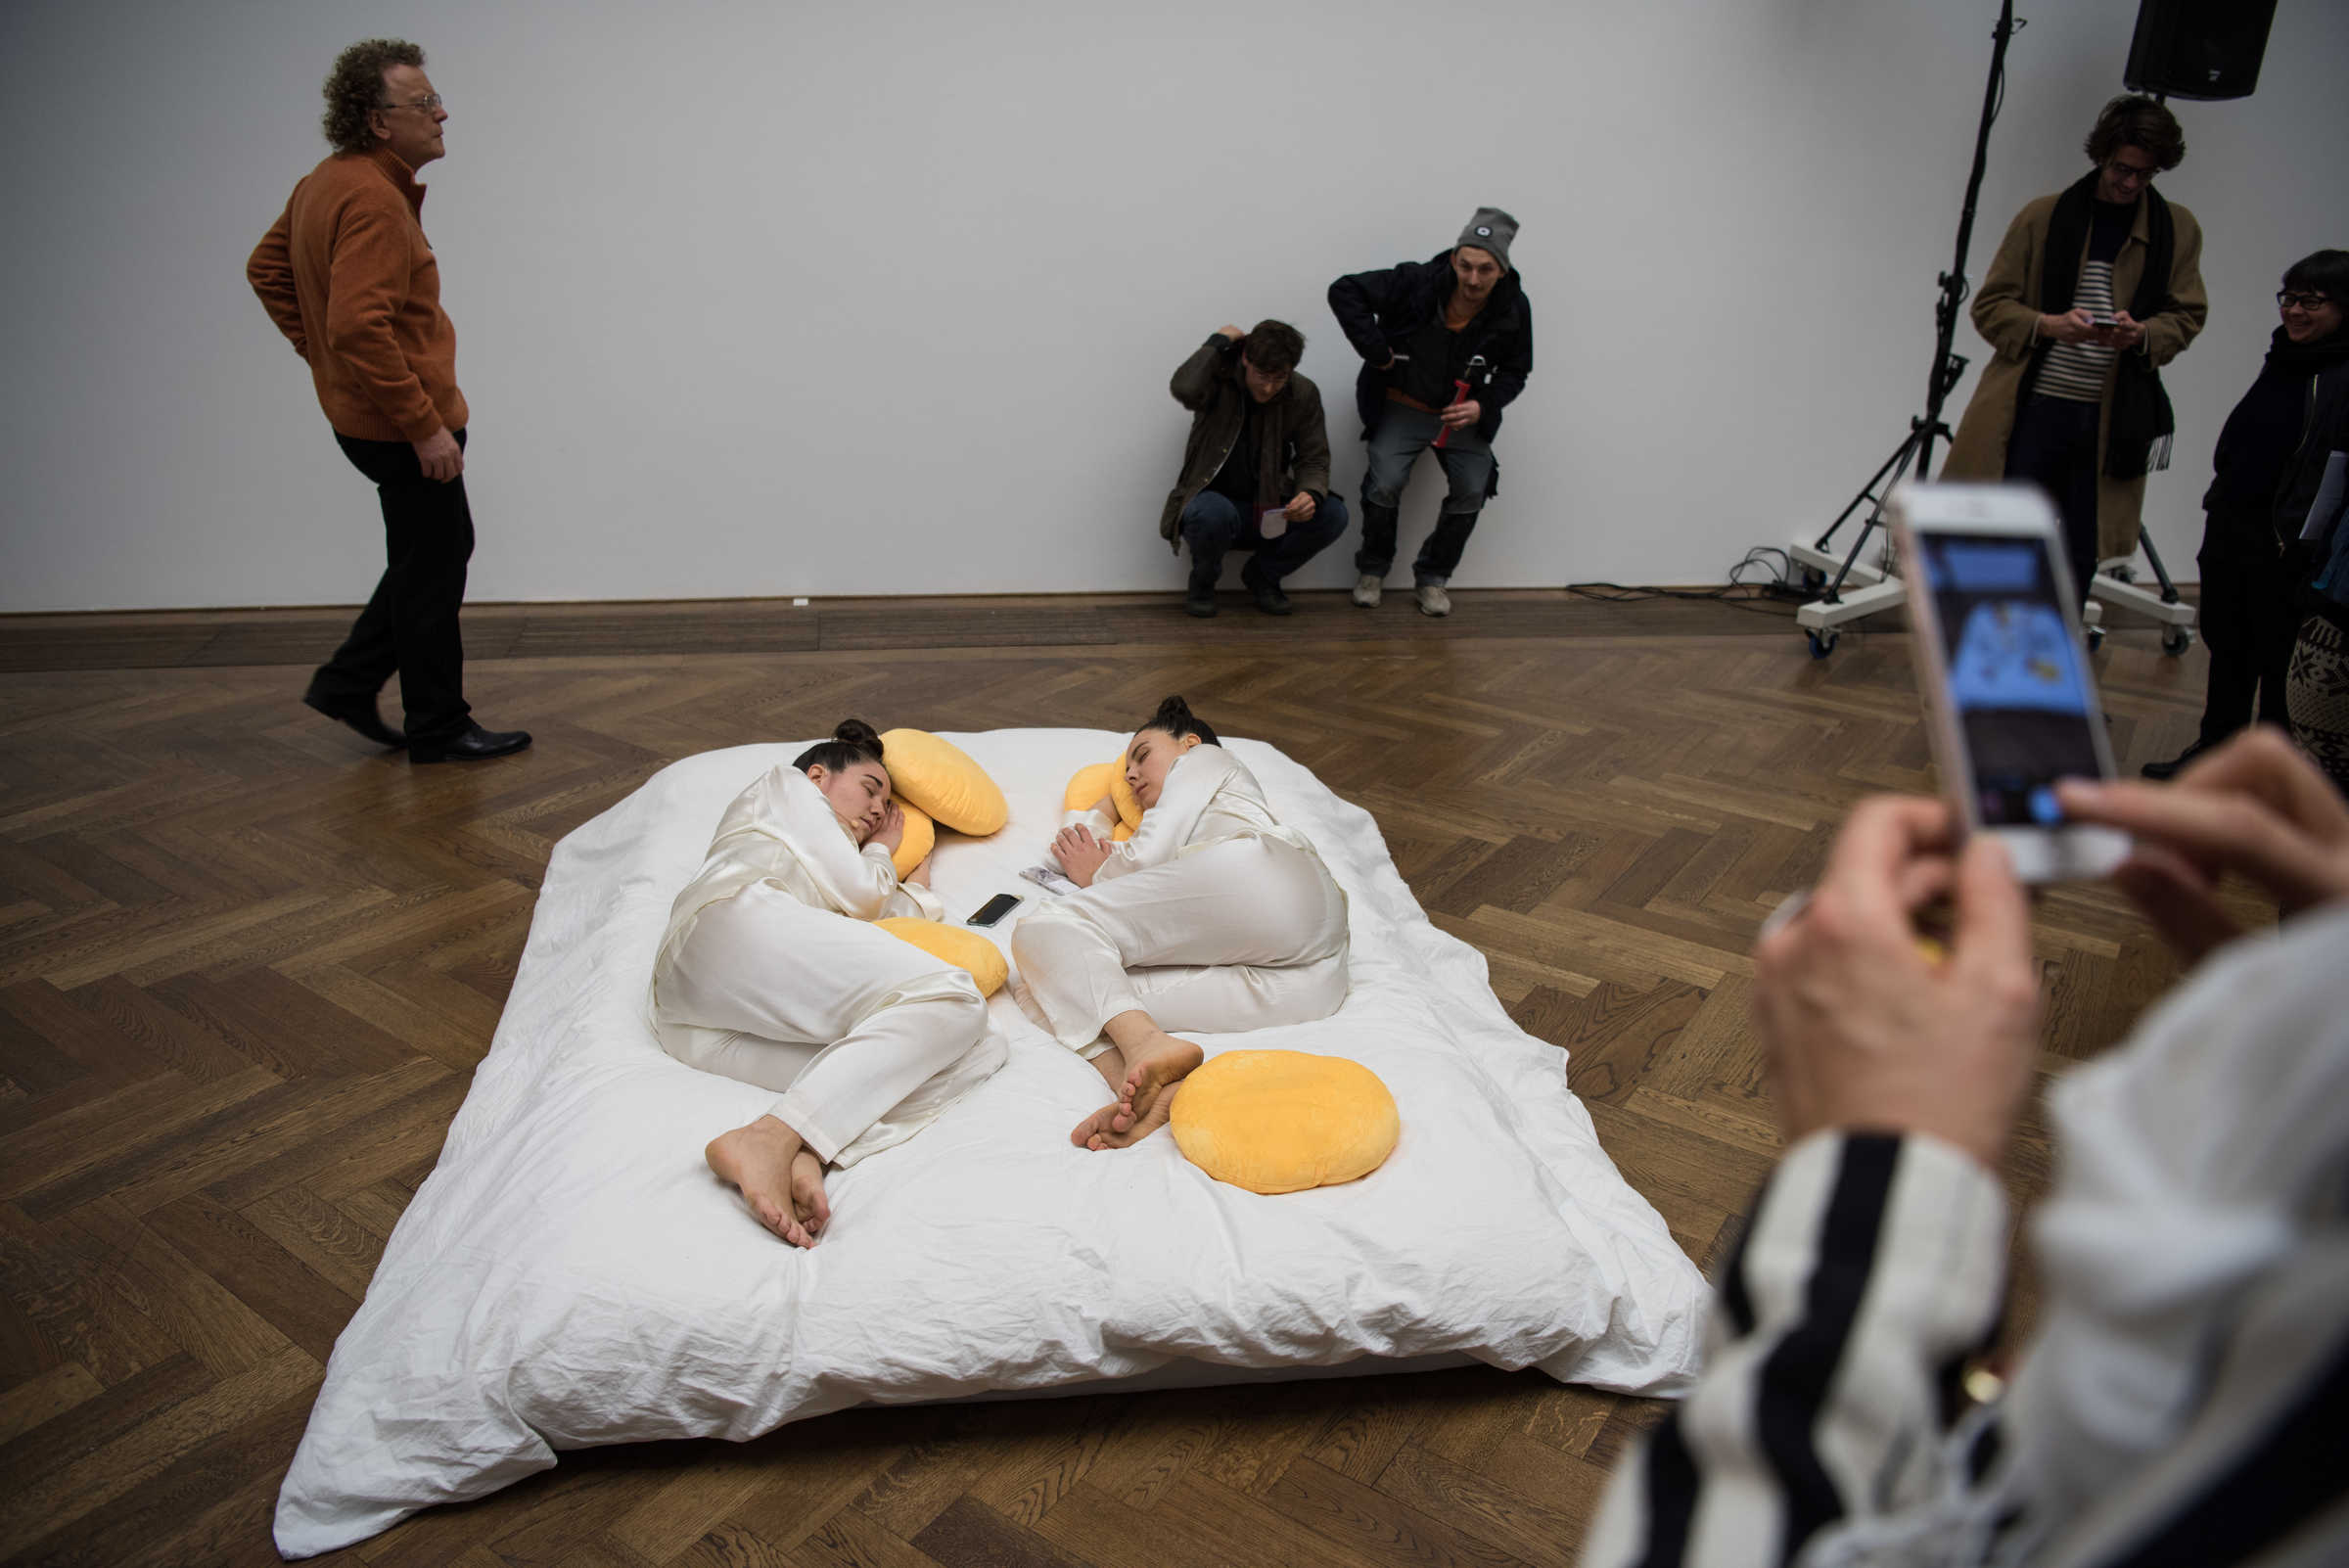 'reich und schön und kunst', performance by Lea Rüegg and Raphaela Grolimund, at 'New Swiss Performance Now', curated by Elena Filipovic, Kunsthalle Basel, 2018.